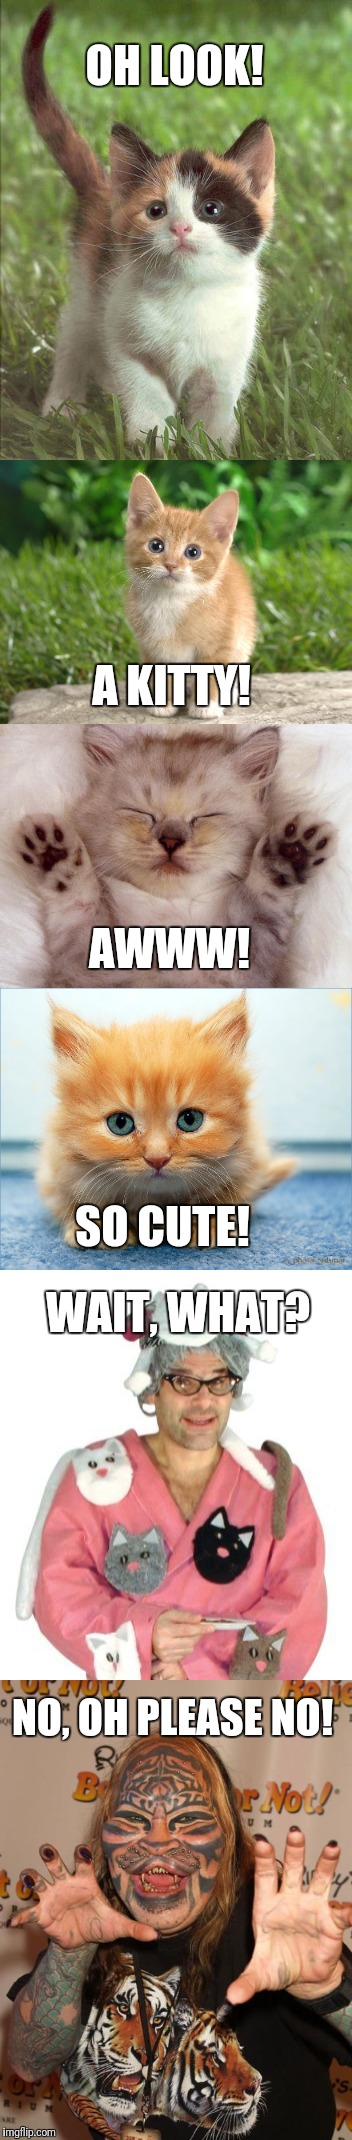 I used to be a cat lover | OH LOOK! NO, OH PLEASE NO! A KITTY! AWWW! SO CUTE! WAIT, WHAT? | image tagged in cats,weirdo | made w/ Imgflip meme maker